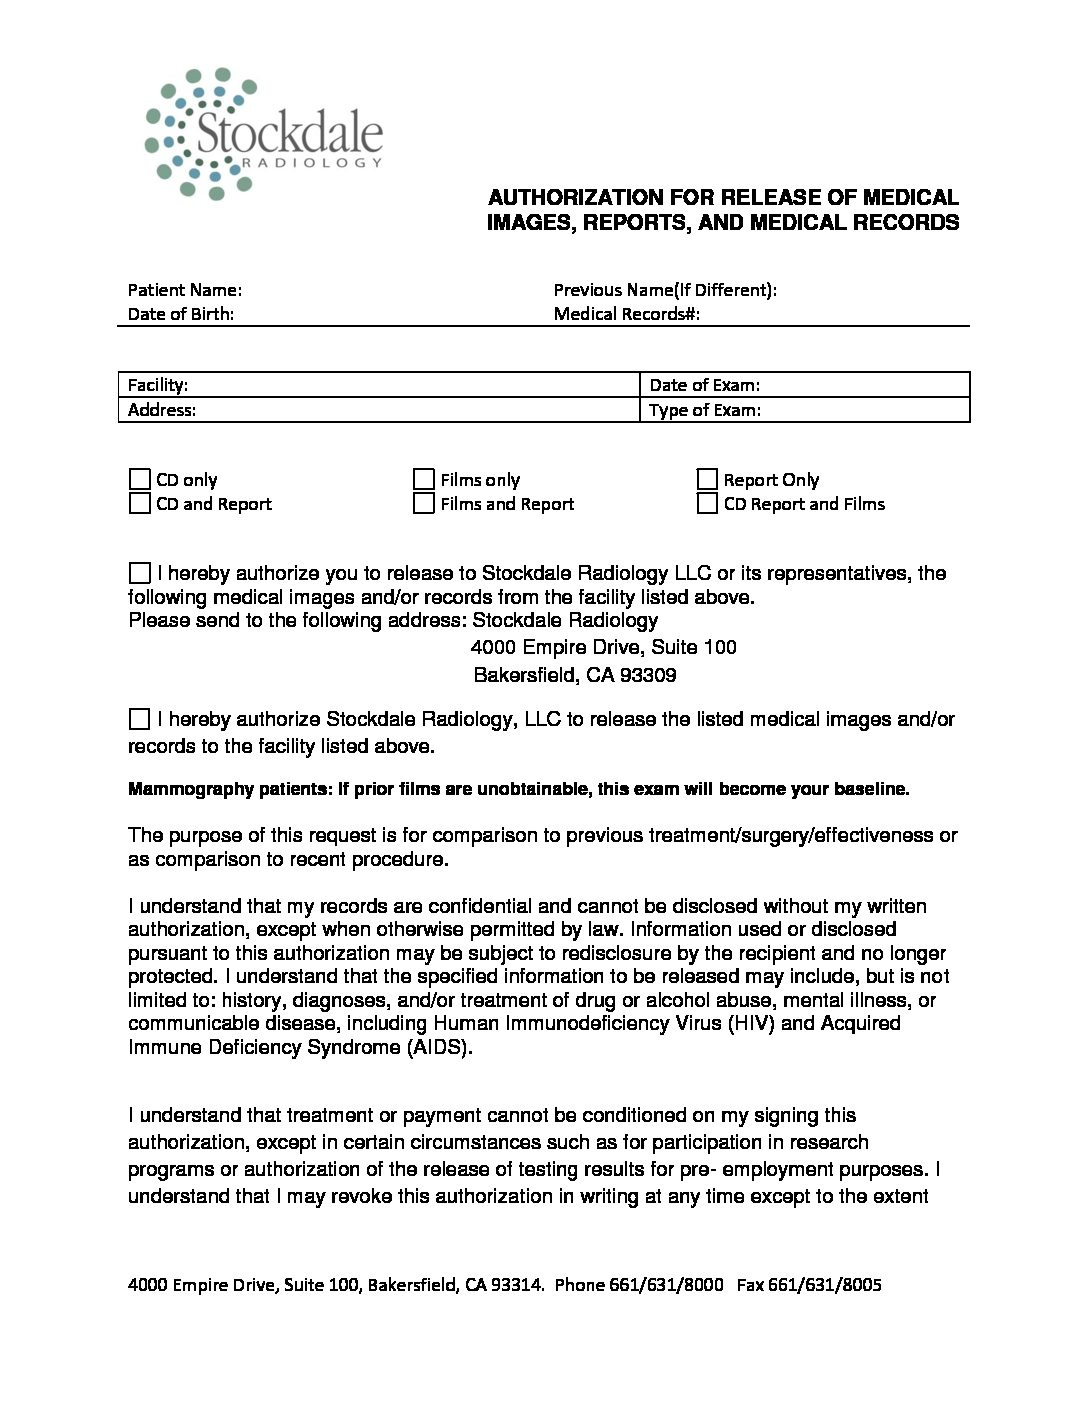 Authorization for Release of Medical Images, Reports, and Medical Records